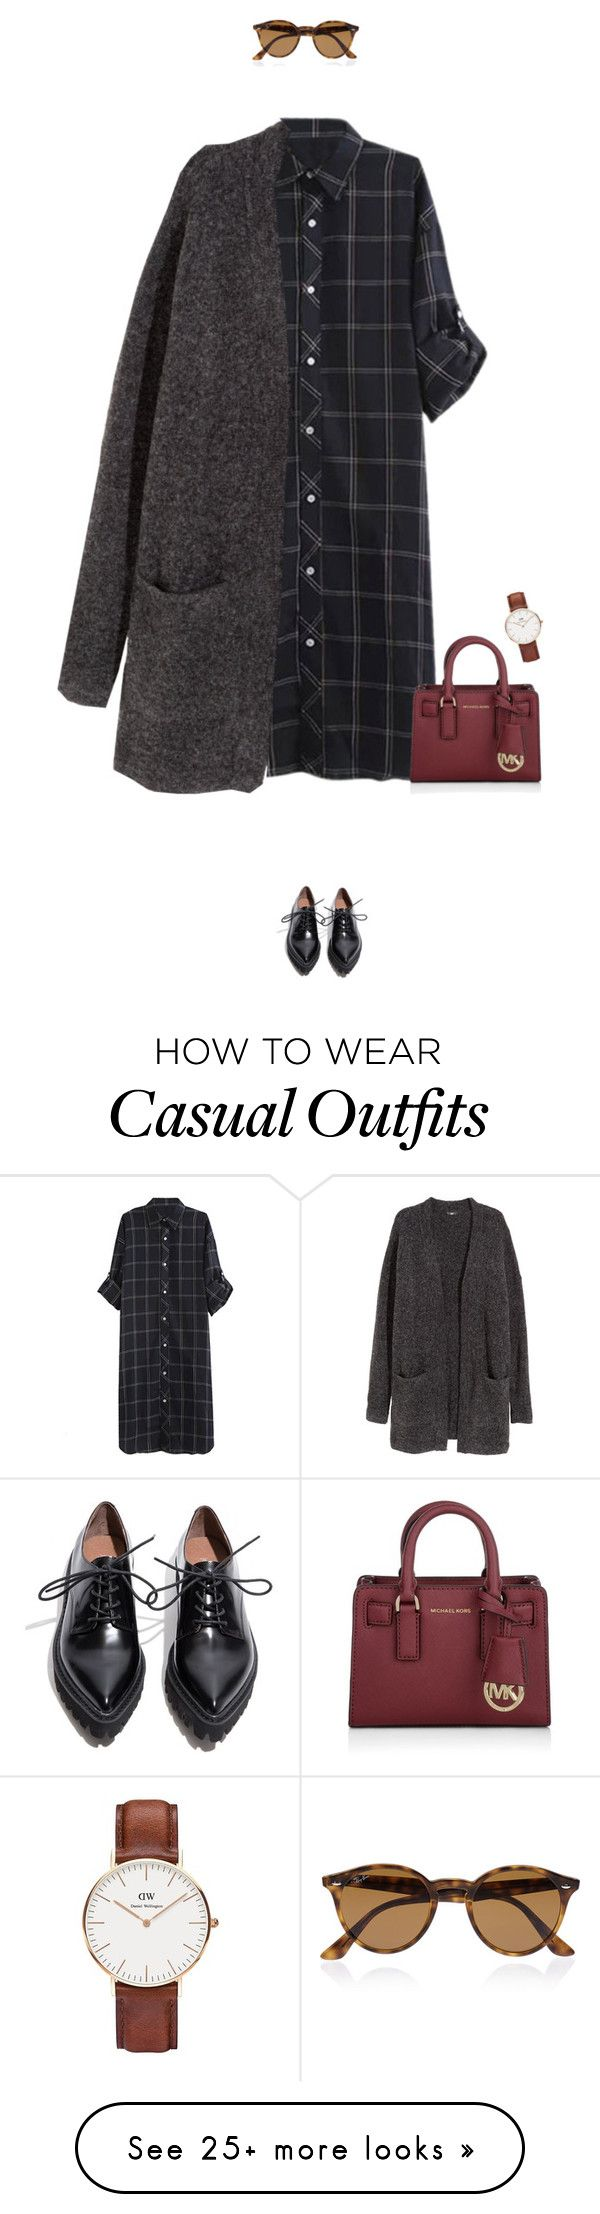 """Super casual day outfit !"" by azzra on Polyvore featuring H&M, Michael Kors, Jeffrey Campbell, Daniel Wellington, Ray-Ban, women's clothing, women's fashion, women, female and woman"